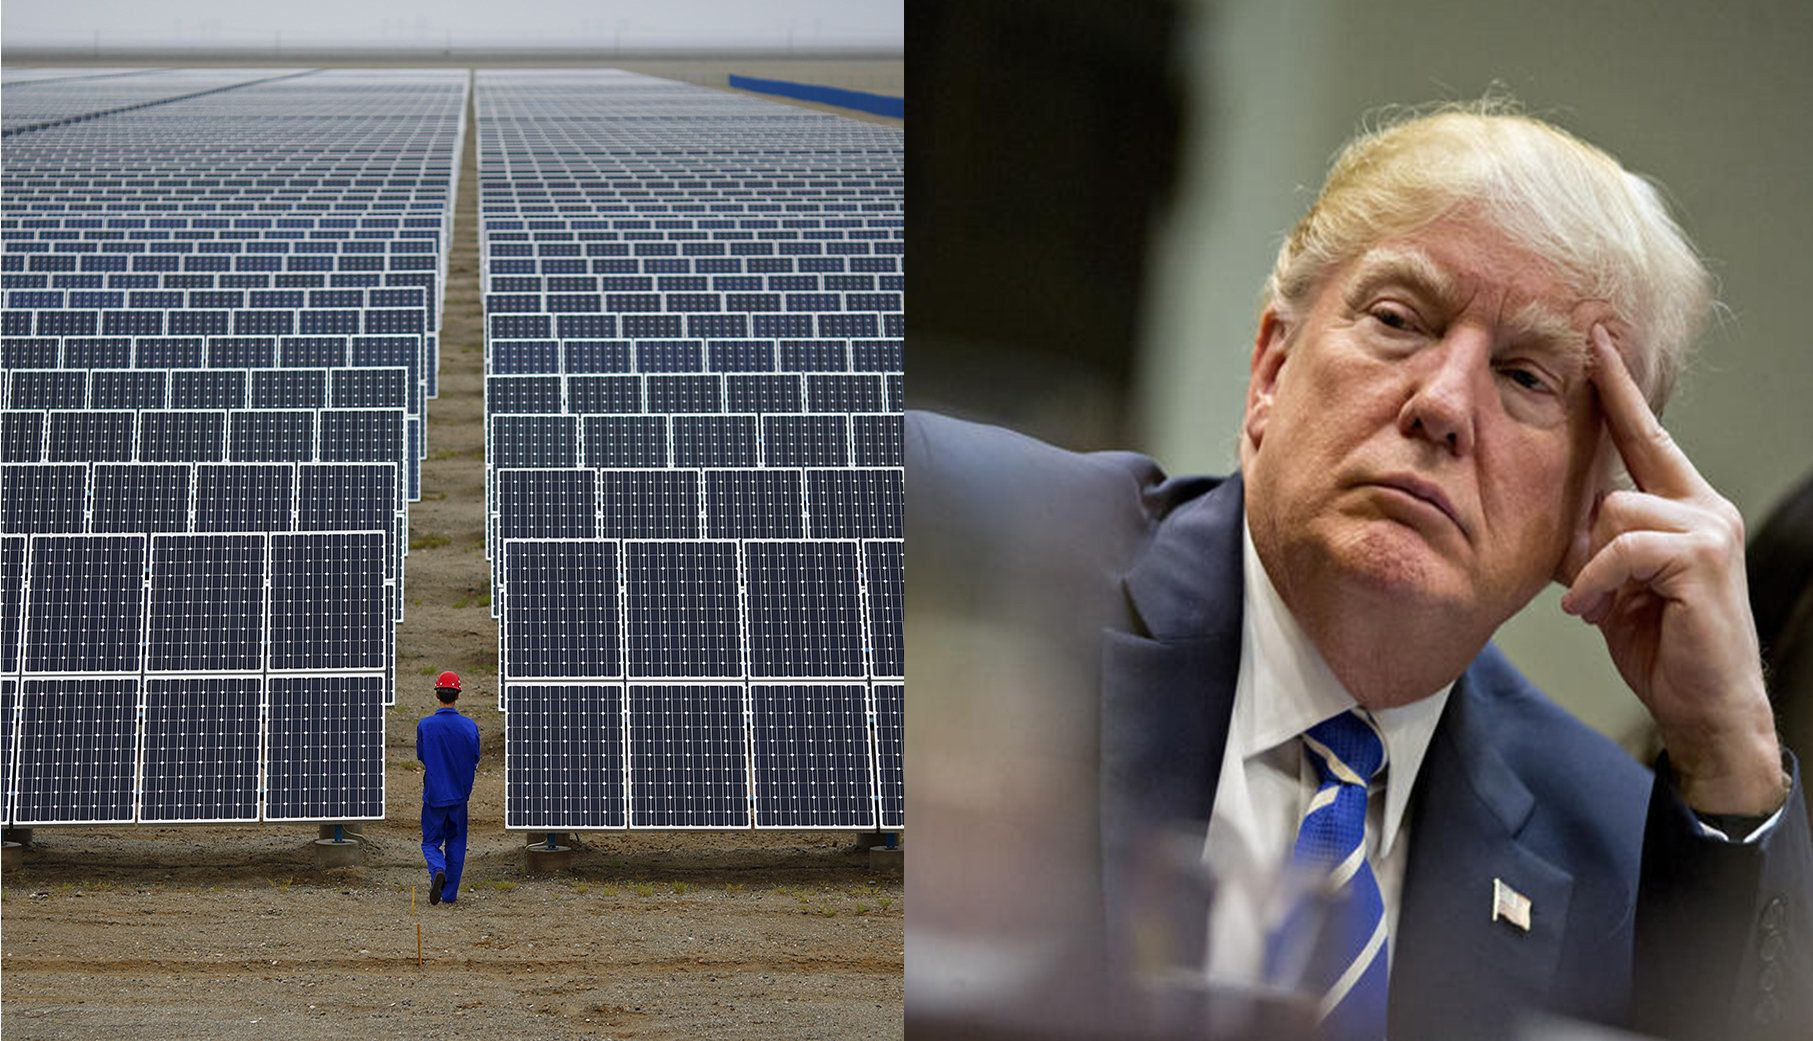 Trump has lost the solar war